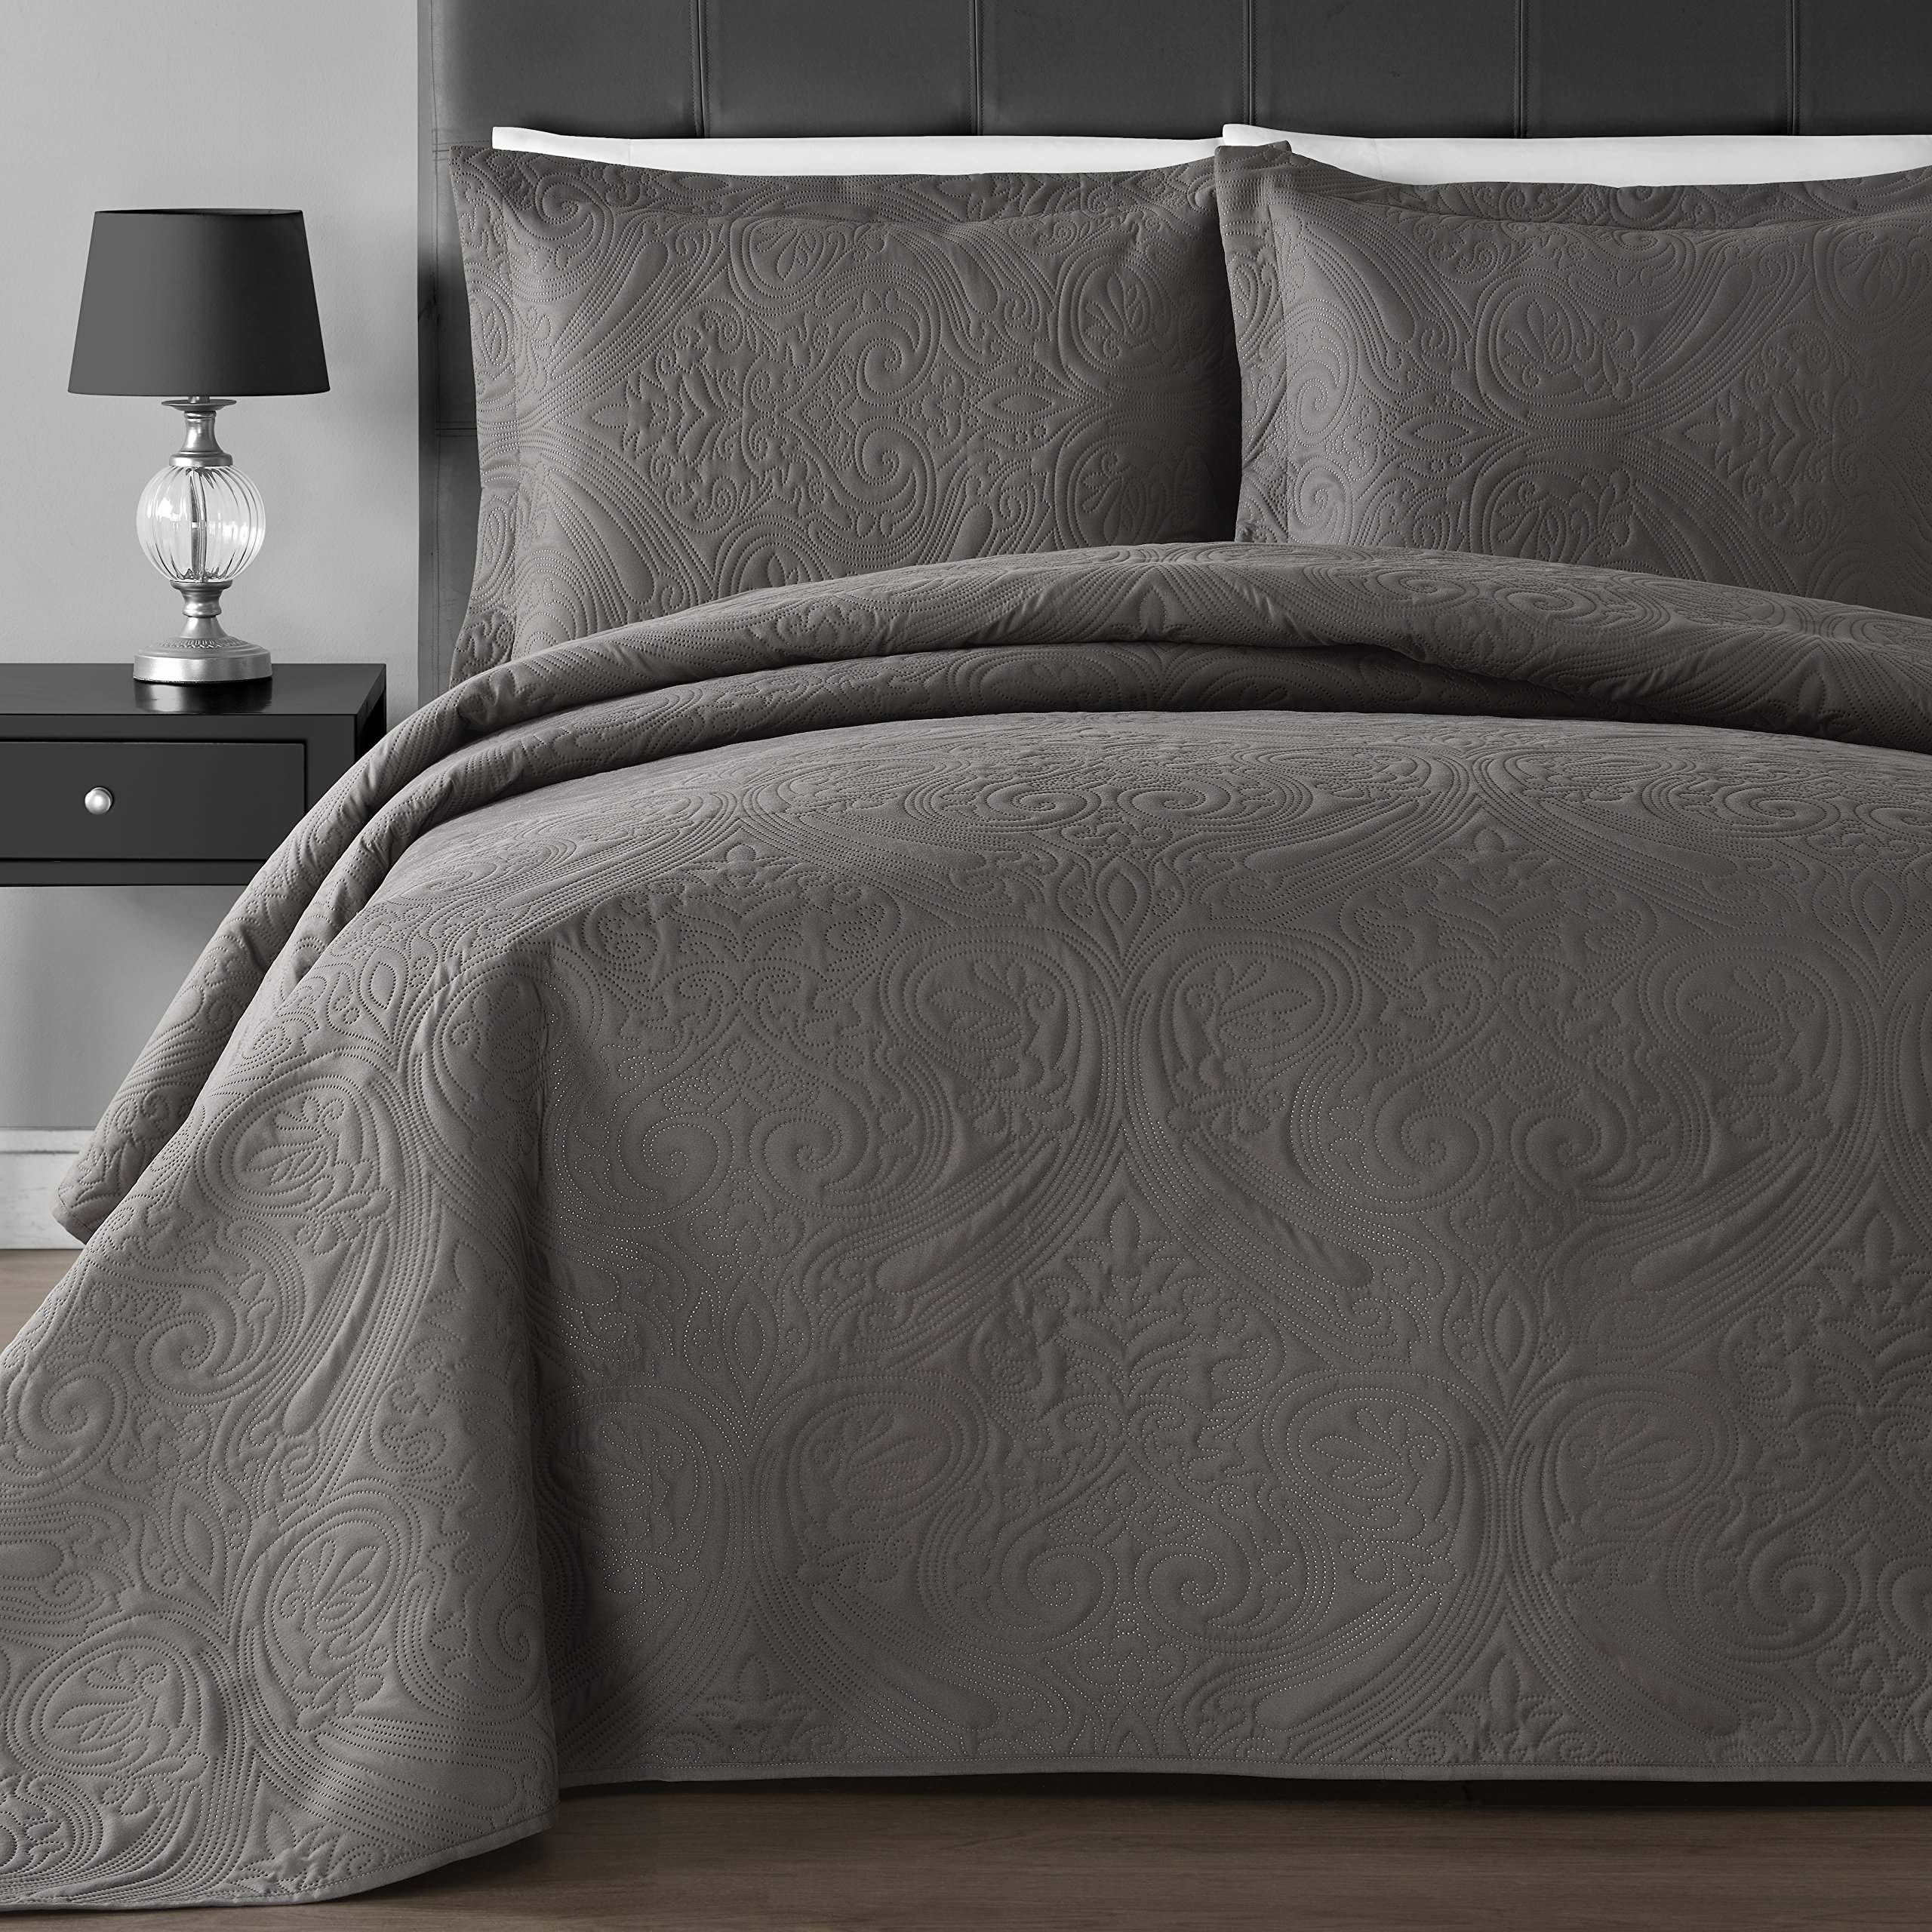 Comfy Bedding Extra Lightweight and Oversized Thermal Pressing Floral 3-piece Coverlet Set (King/Cal King, Grey)